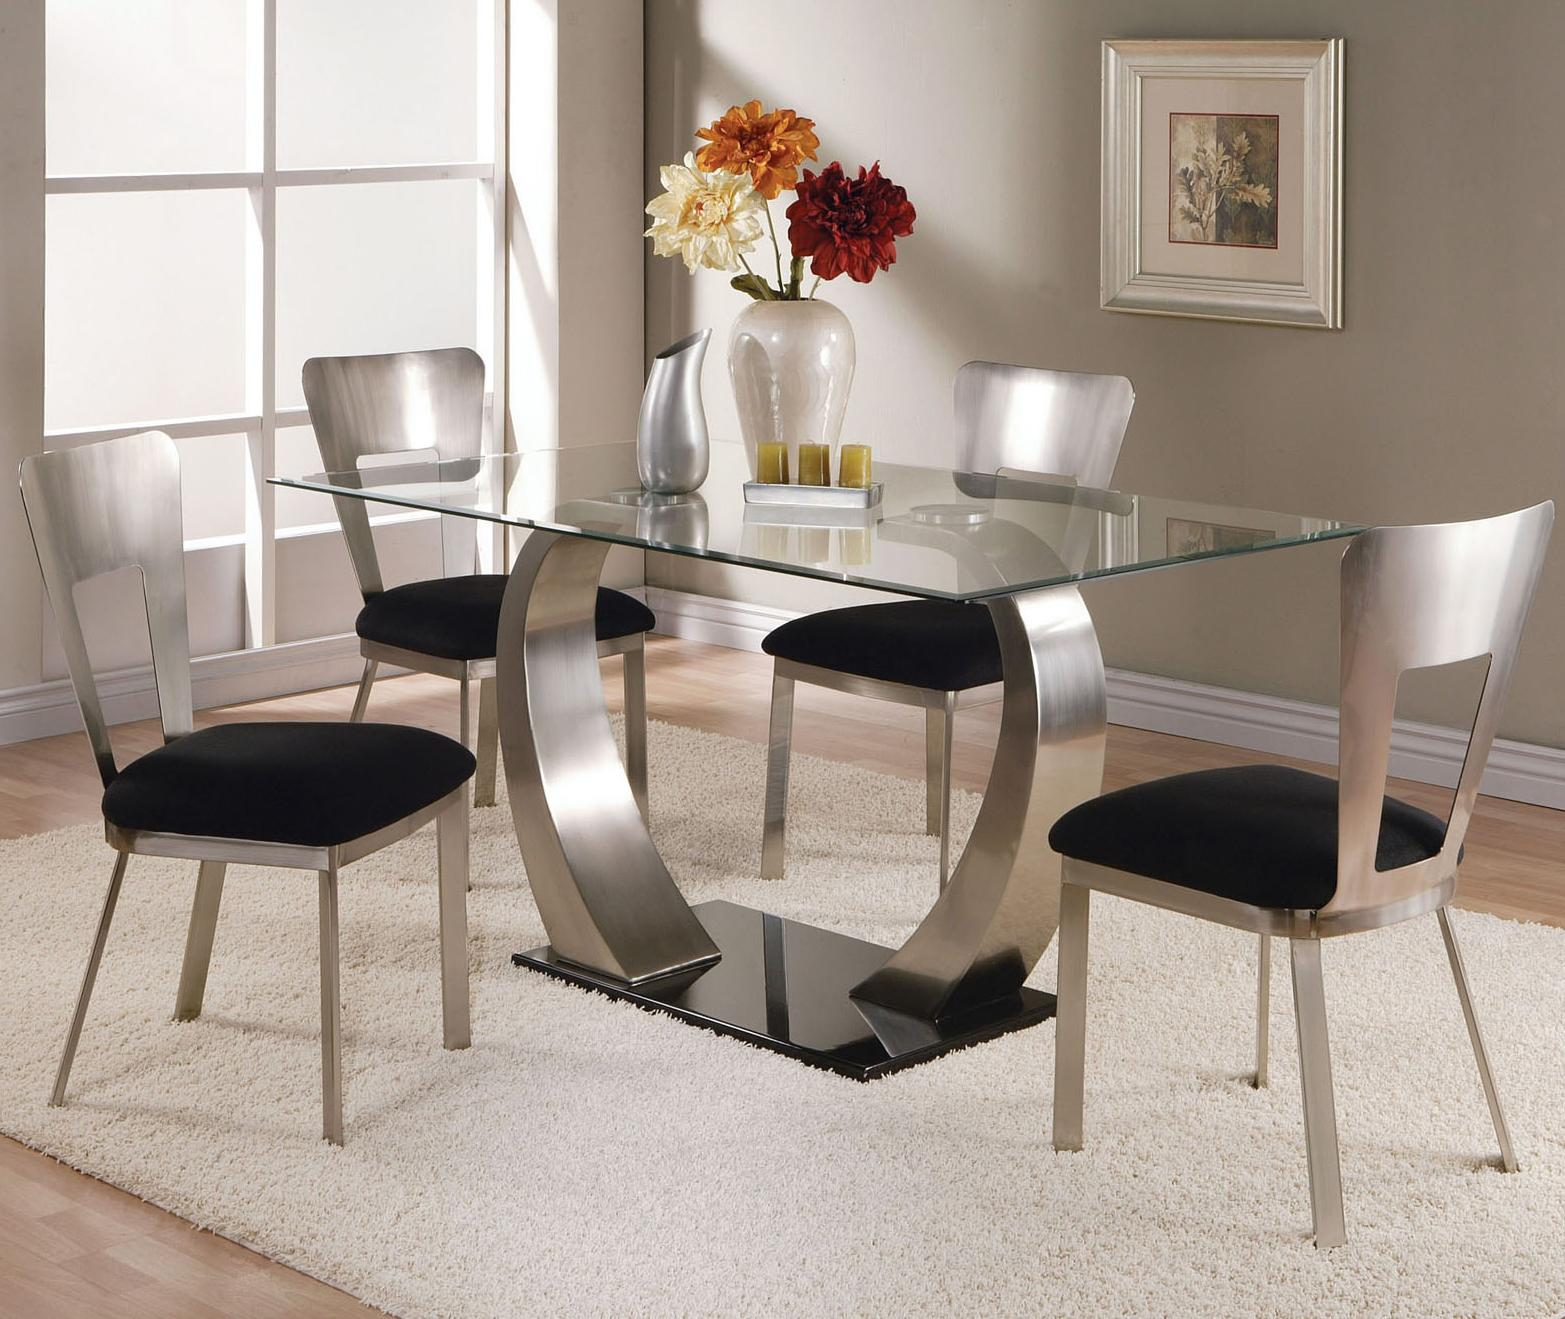 Acme Furniture Camille 5 Piece Dining Set - Item Number: 10090+4x93